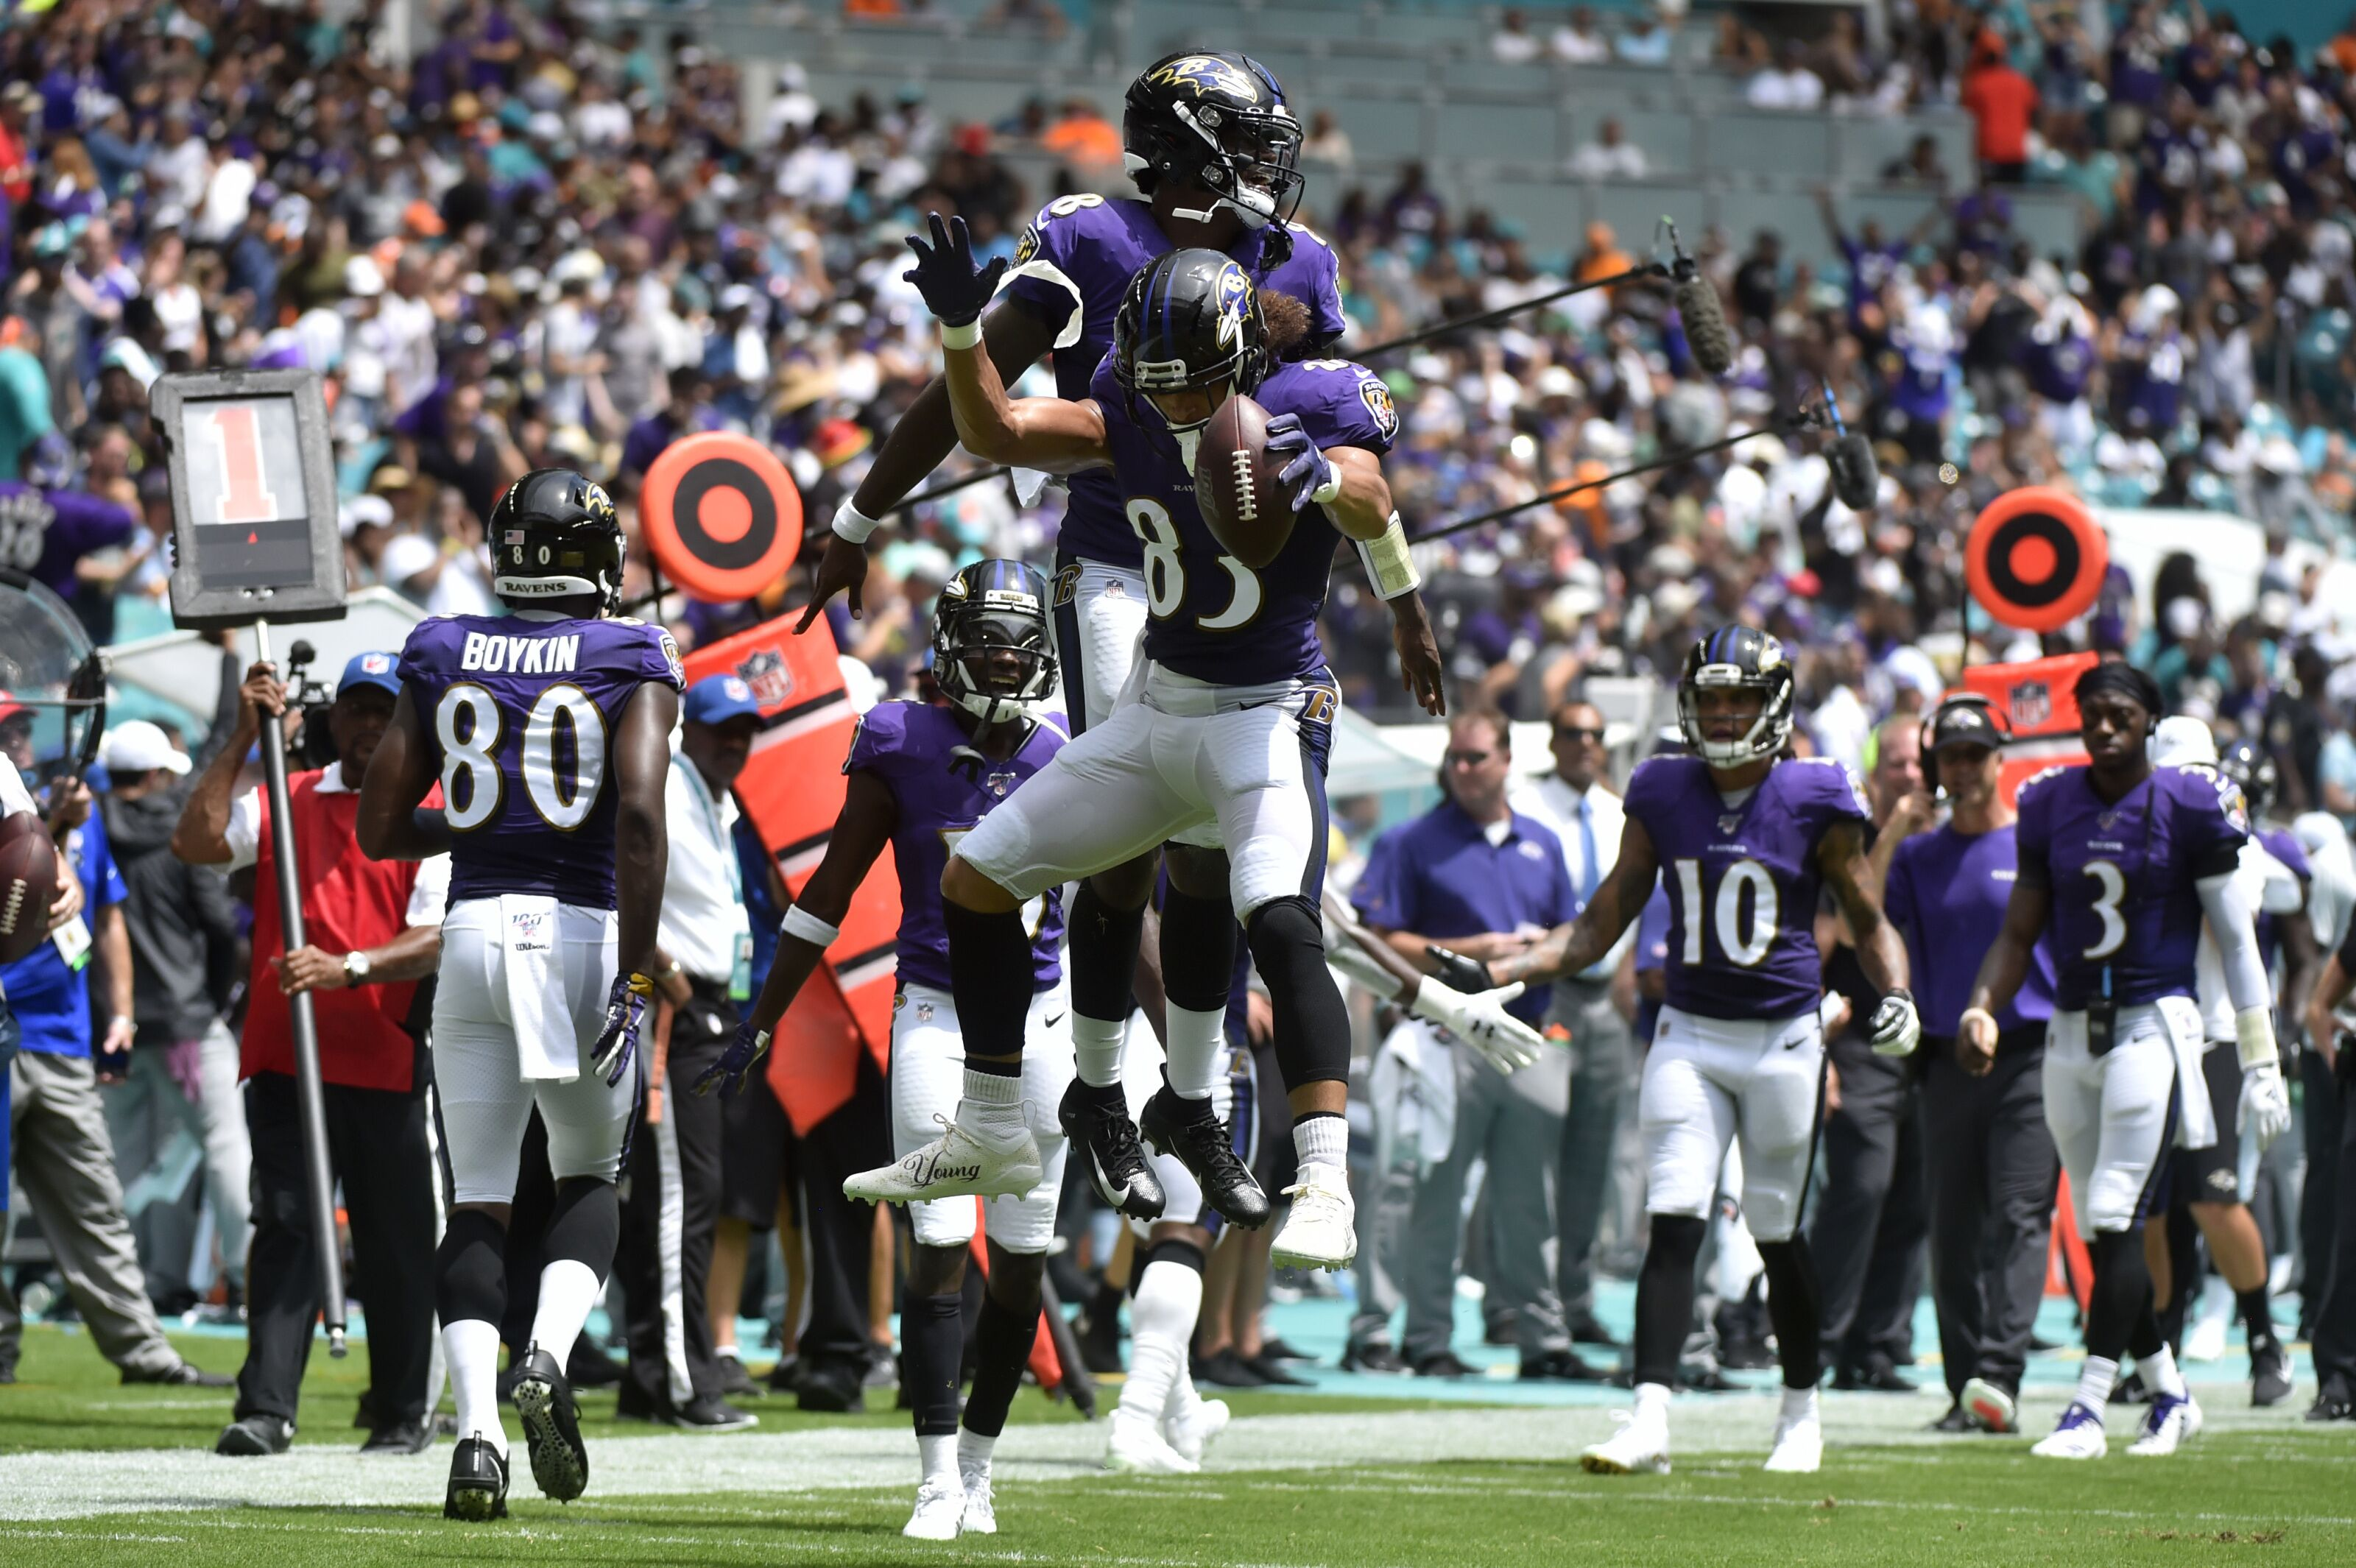 Baltimore Ravens need to spread ball around more in passing attack